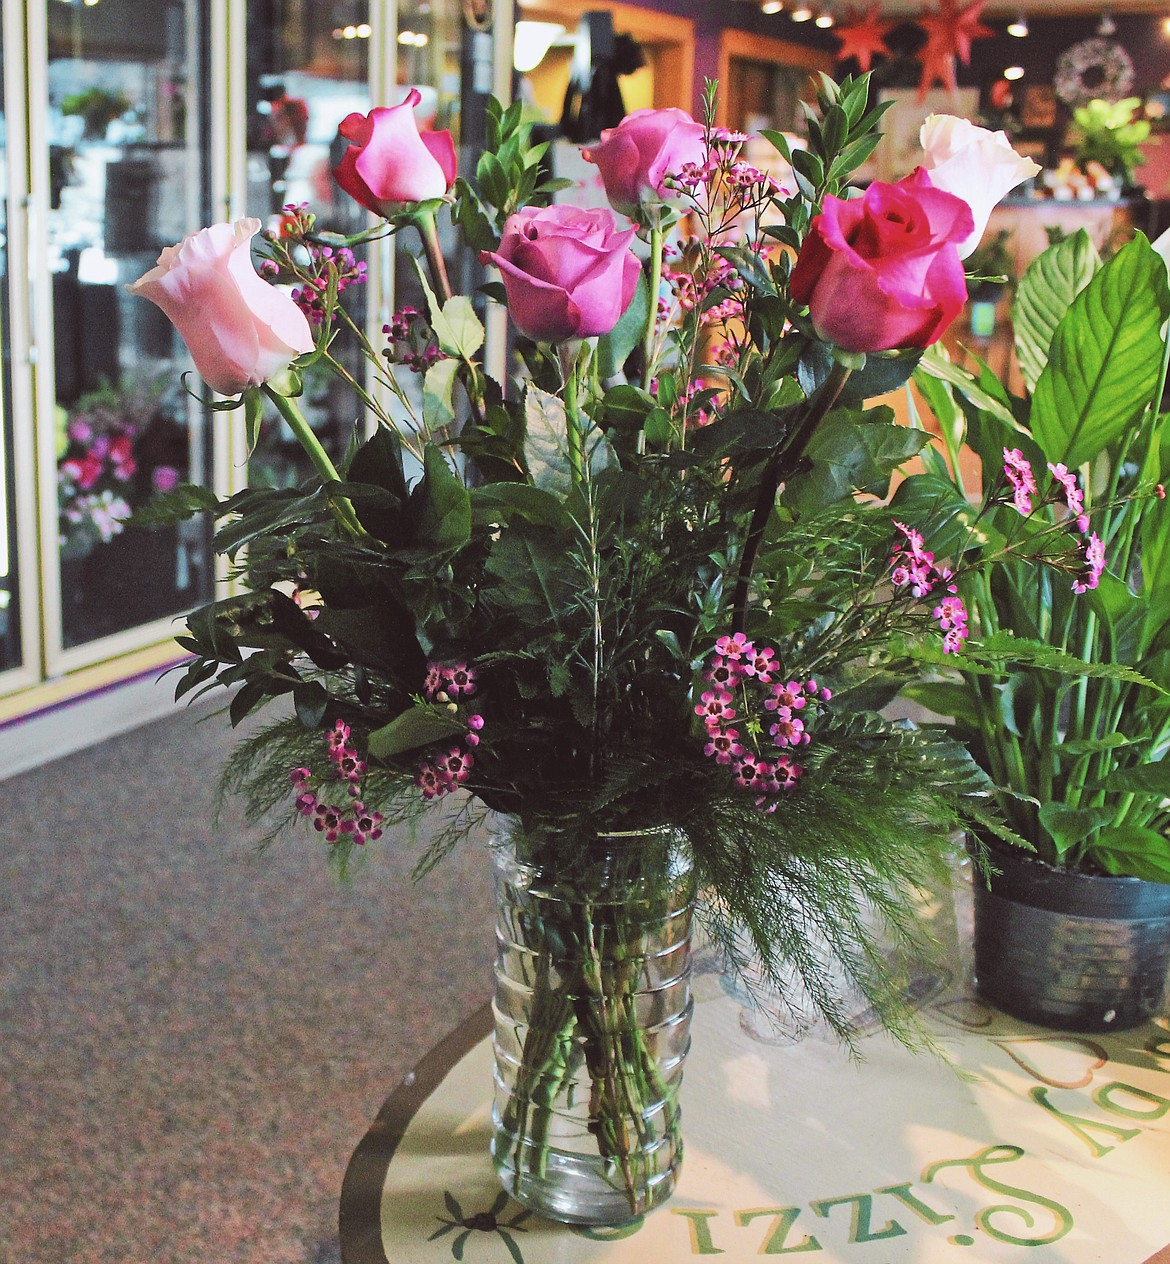 Freshly cut flowers are an excellent choice for a Valentine's Day gift. These are from Sugar Plum Floral and Gifts.